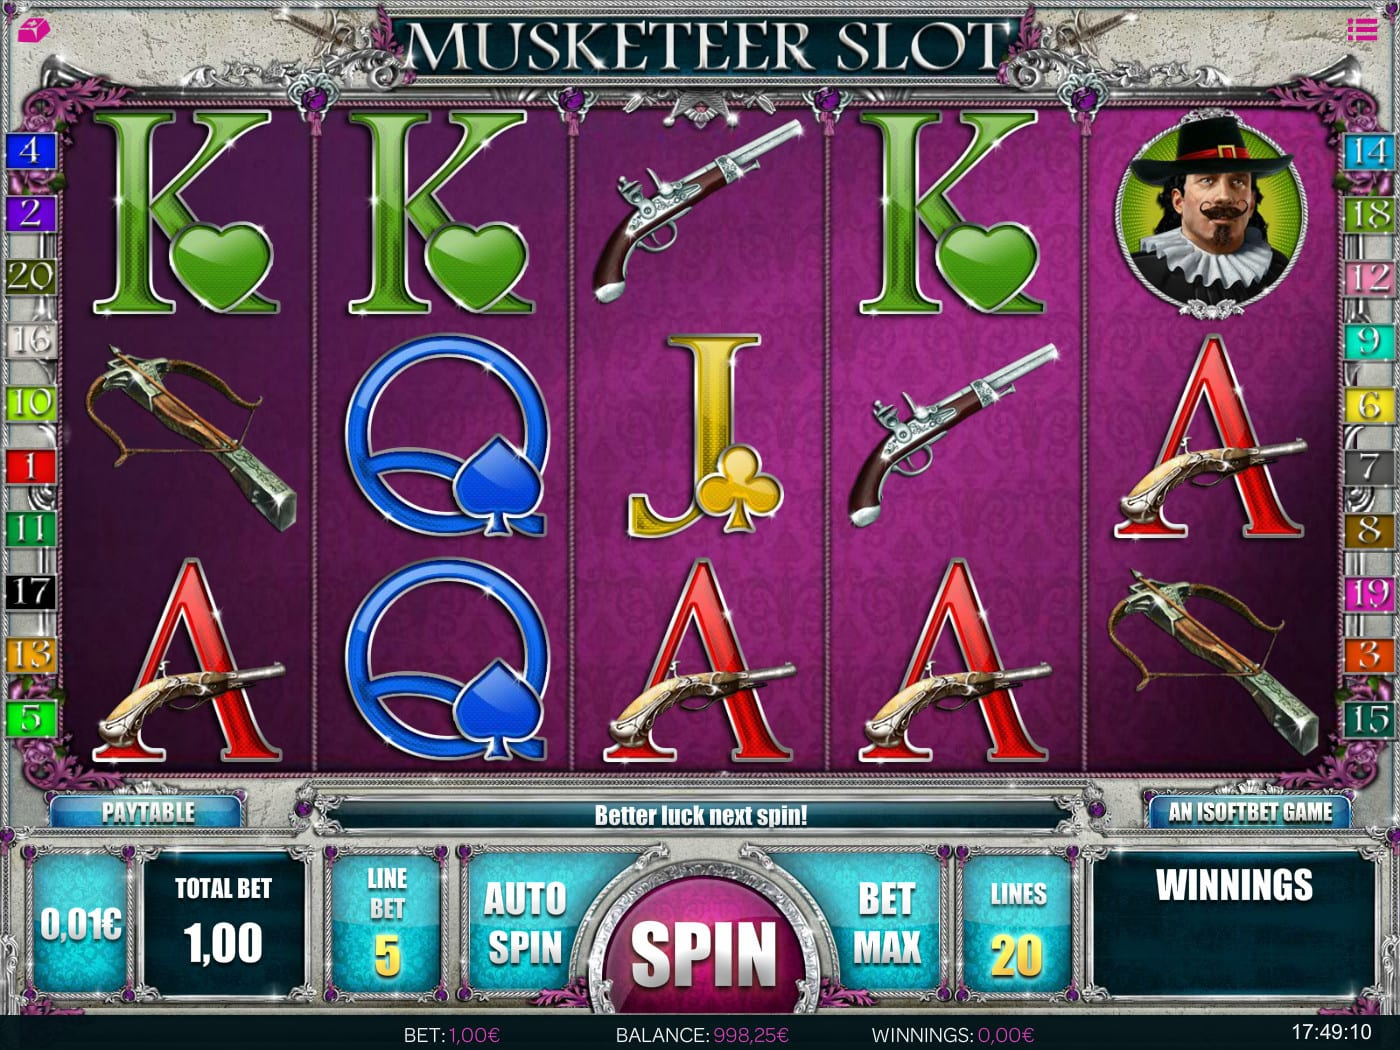 Musketeers Slot reel screen